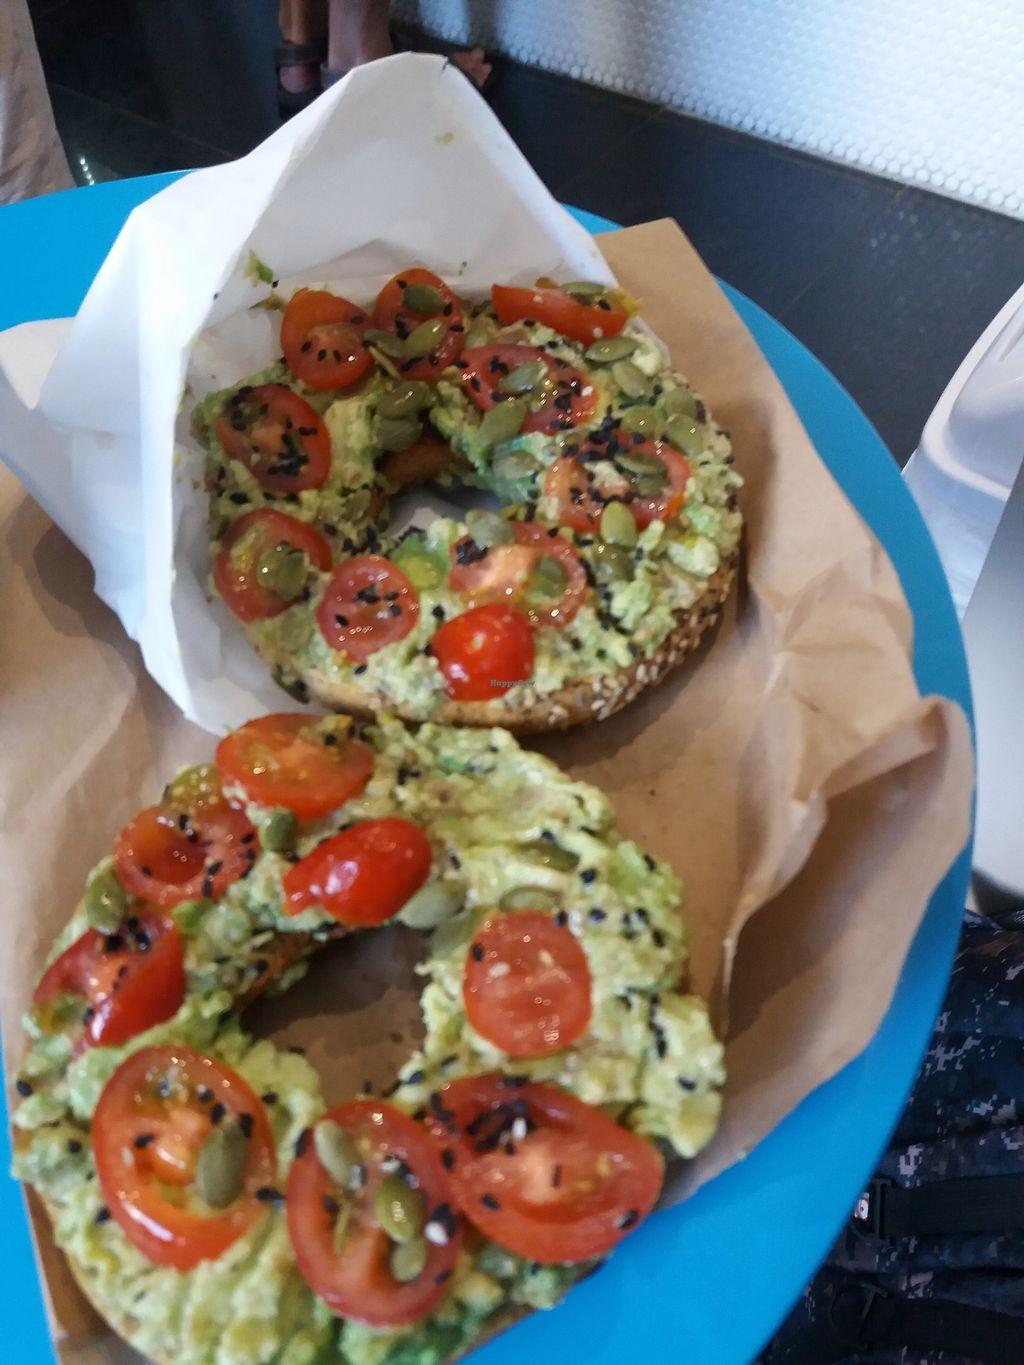 "Photo of Smoothme Superfood Bar  by <a href=""/members/profile/veganvirtues"">veganvirtues</a> <br/>Bagel with avocado, cherry toms wirh sunflower seeds <br/> November 12, 2017  - <a href='/contact/abuse/image/92987/324935'>Report</a>"